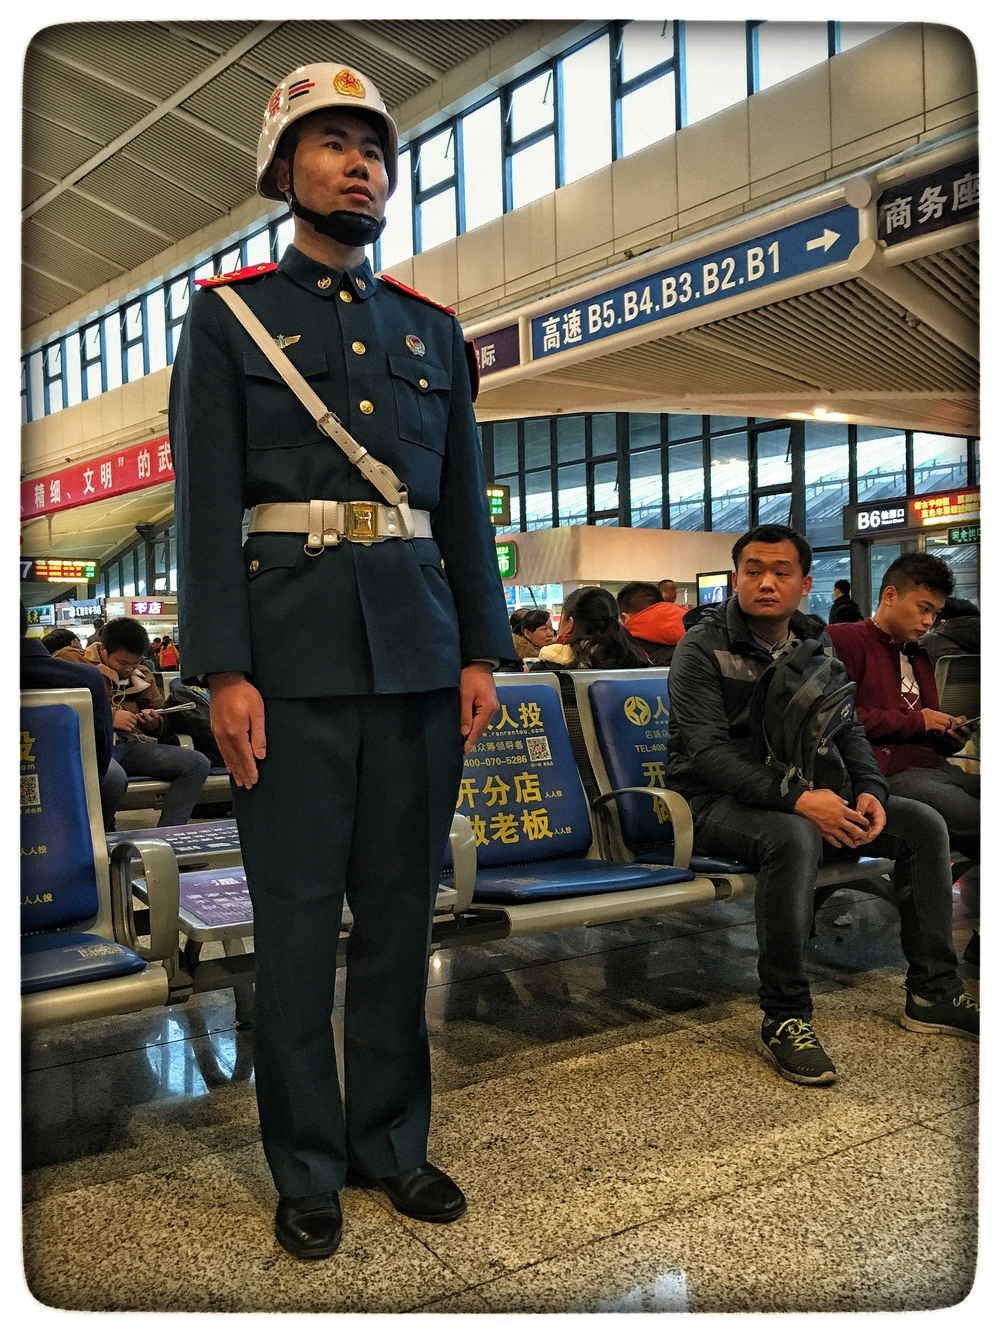 Military guard, Wuhan Railway Station